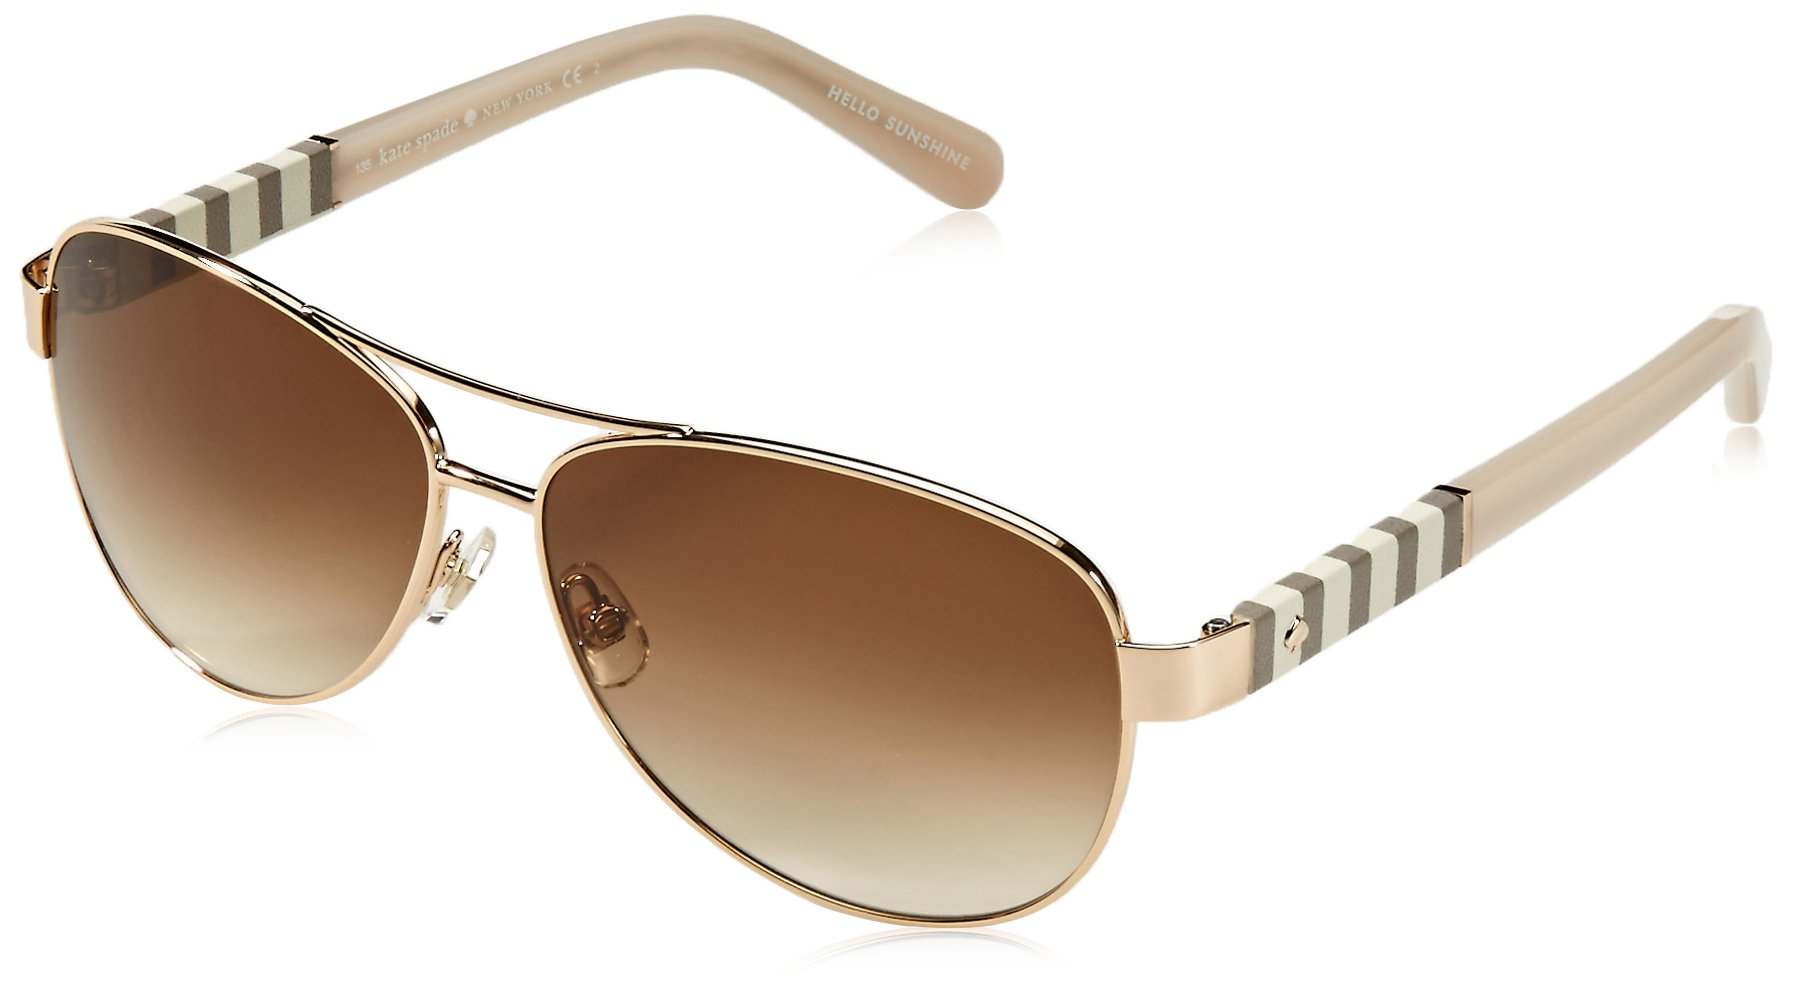 Kate Spade Women's Dalia Aviator Sunglasses, Gold & Brown Gradient, 58 mm